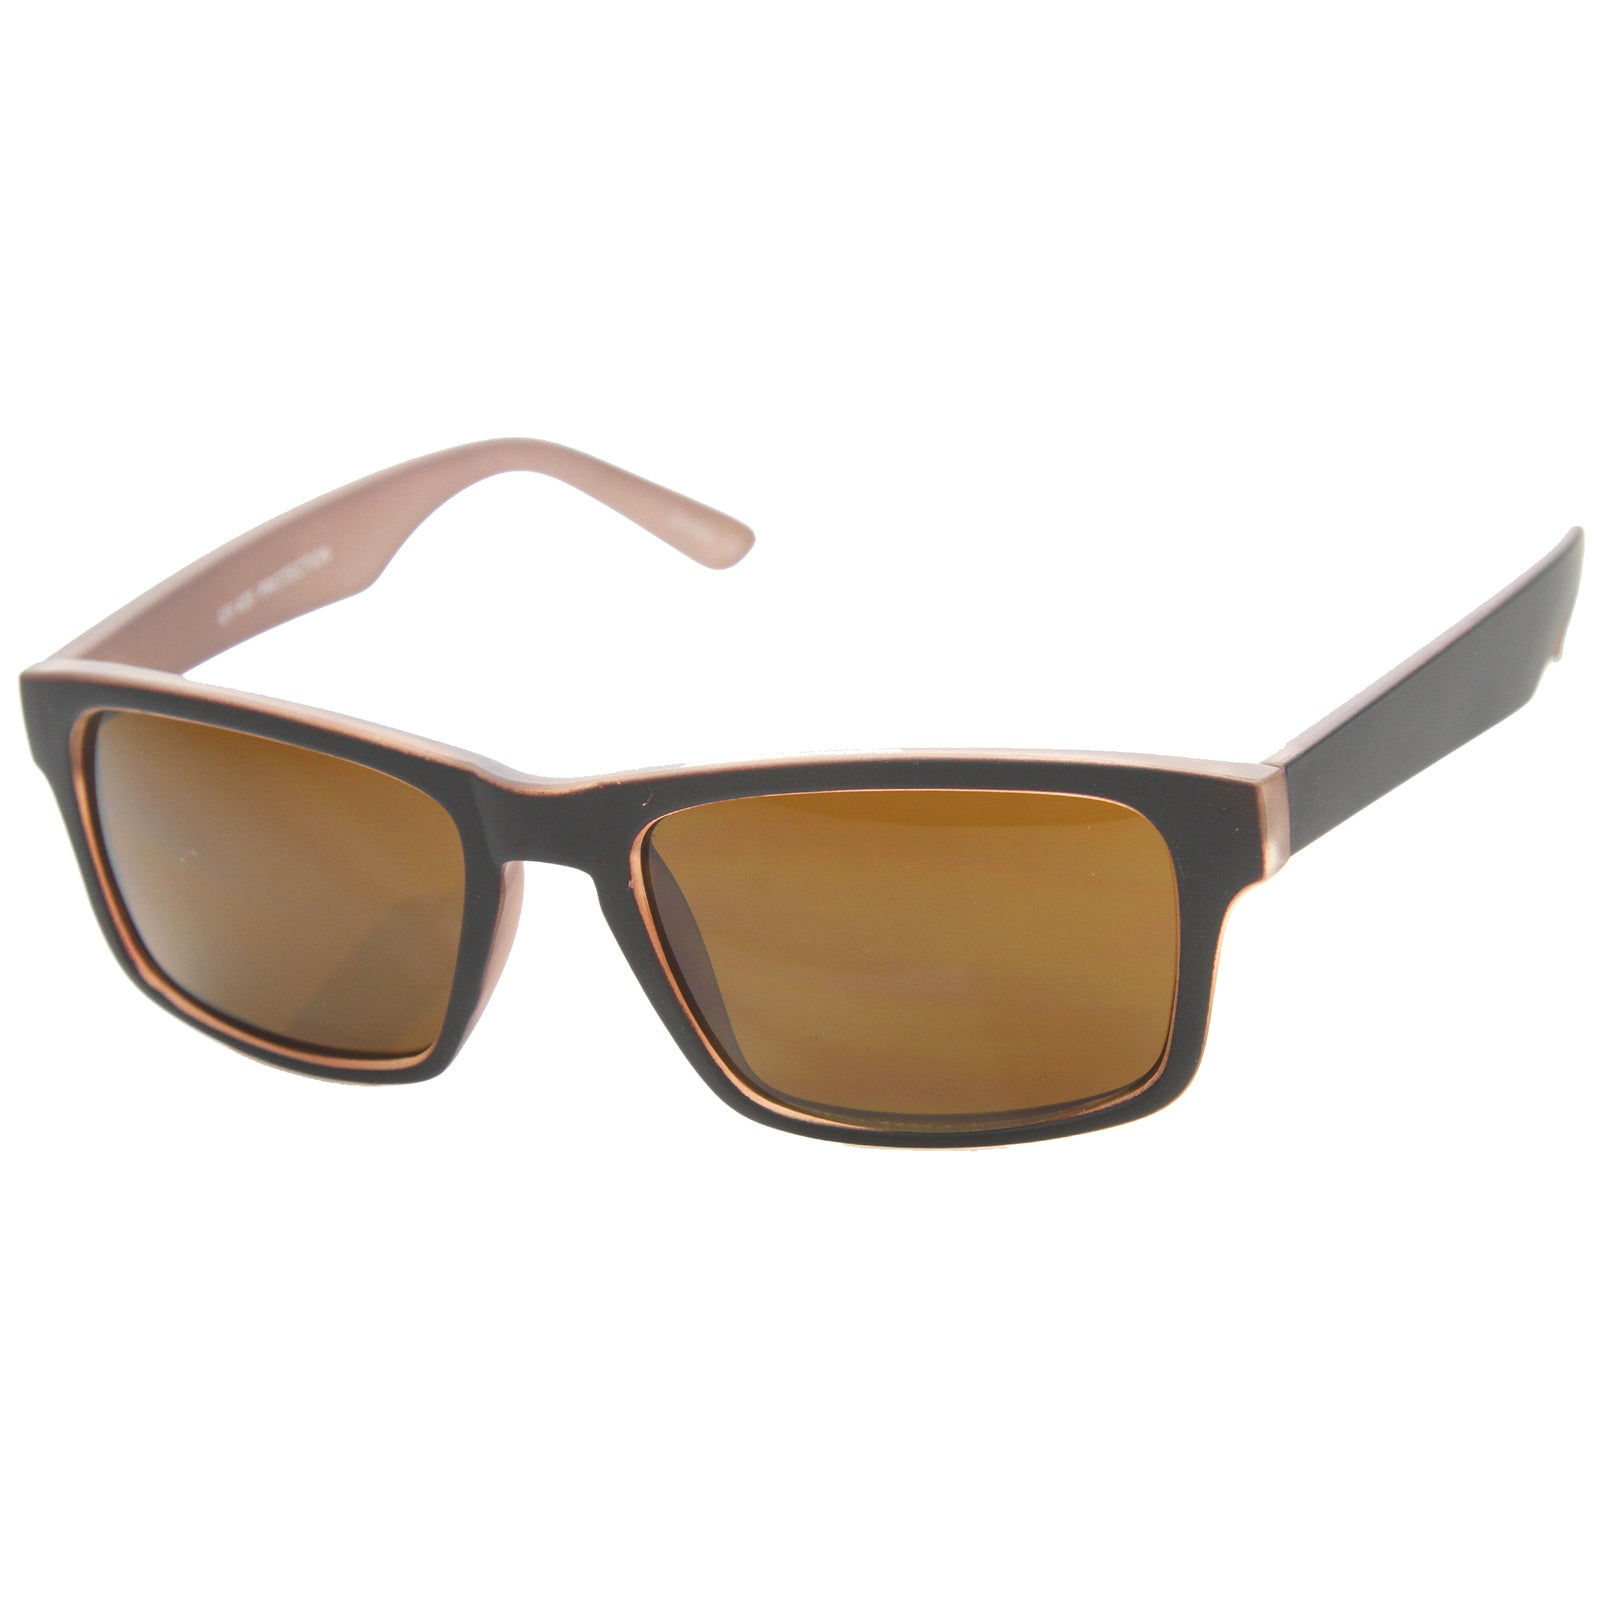 Mens Horn Rimmed Sunglasses With UV400 Protected Composite Lens - sunglass.la - 6